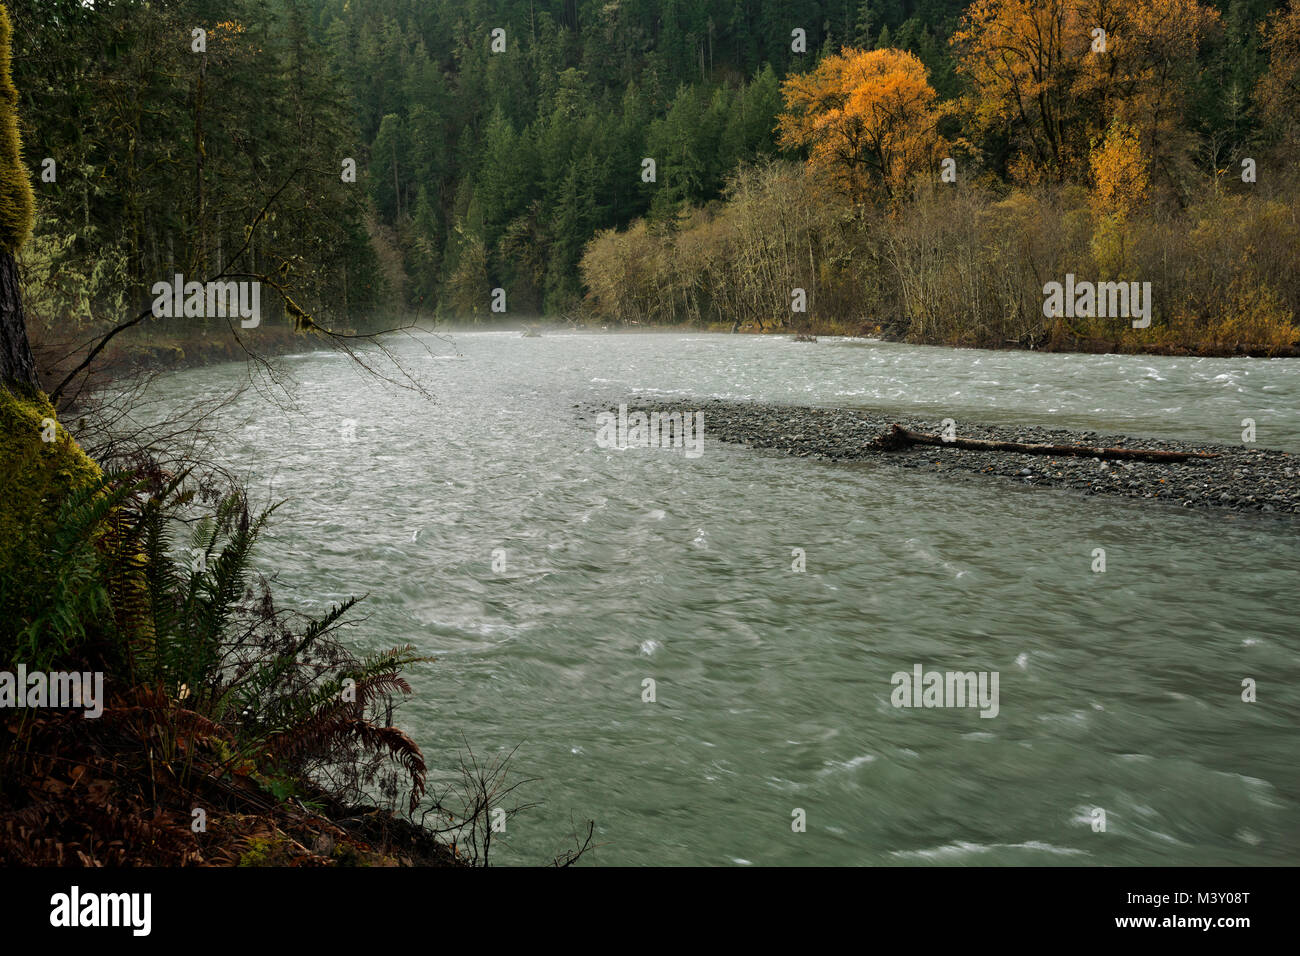 WA13369-00...WASHINGTON - The Elwah River finding its own channel after the removal of the Glines Dam in Olympic - Stock Image